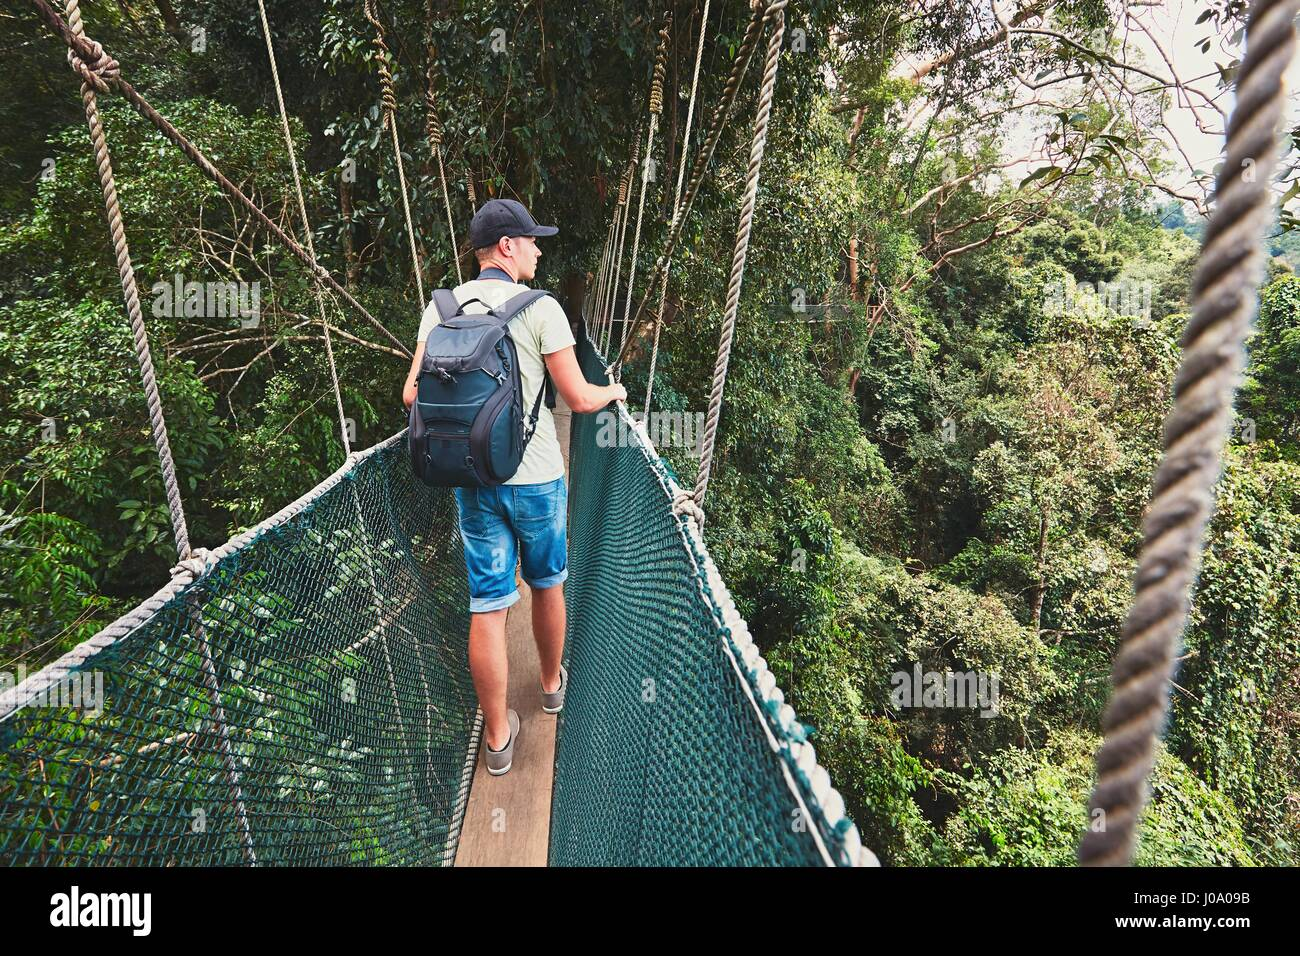 Tourist on the elevated walkway through the treetops in rainforest - Borneo, Malaysia - Stock Image